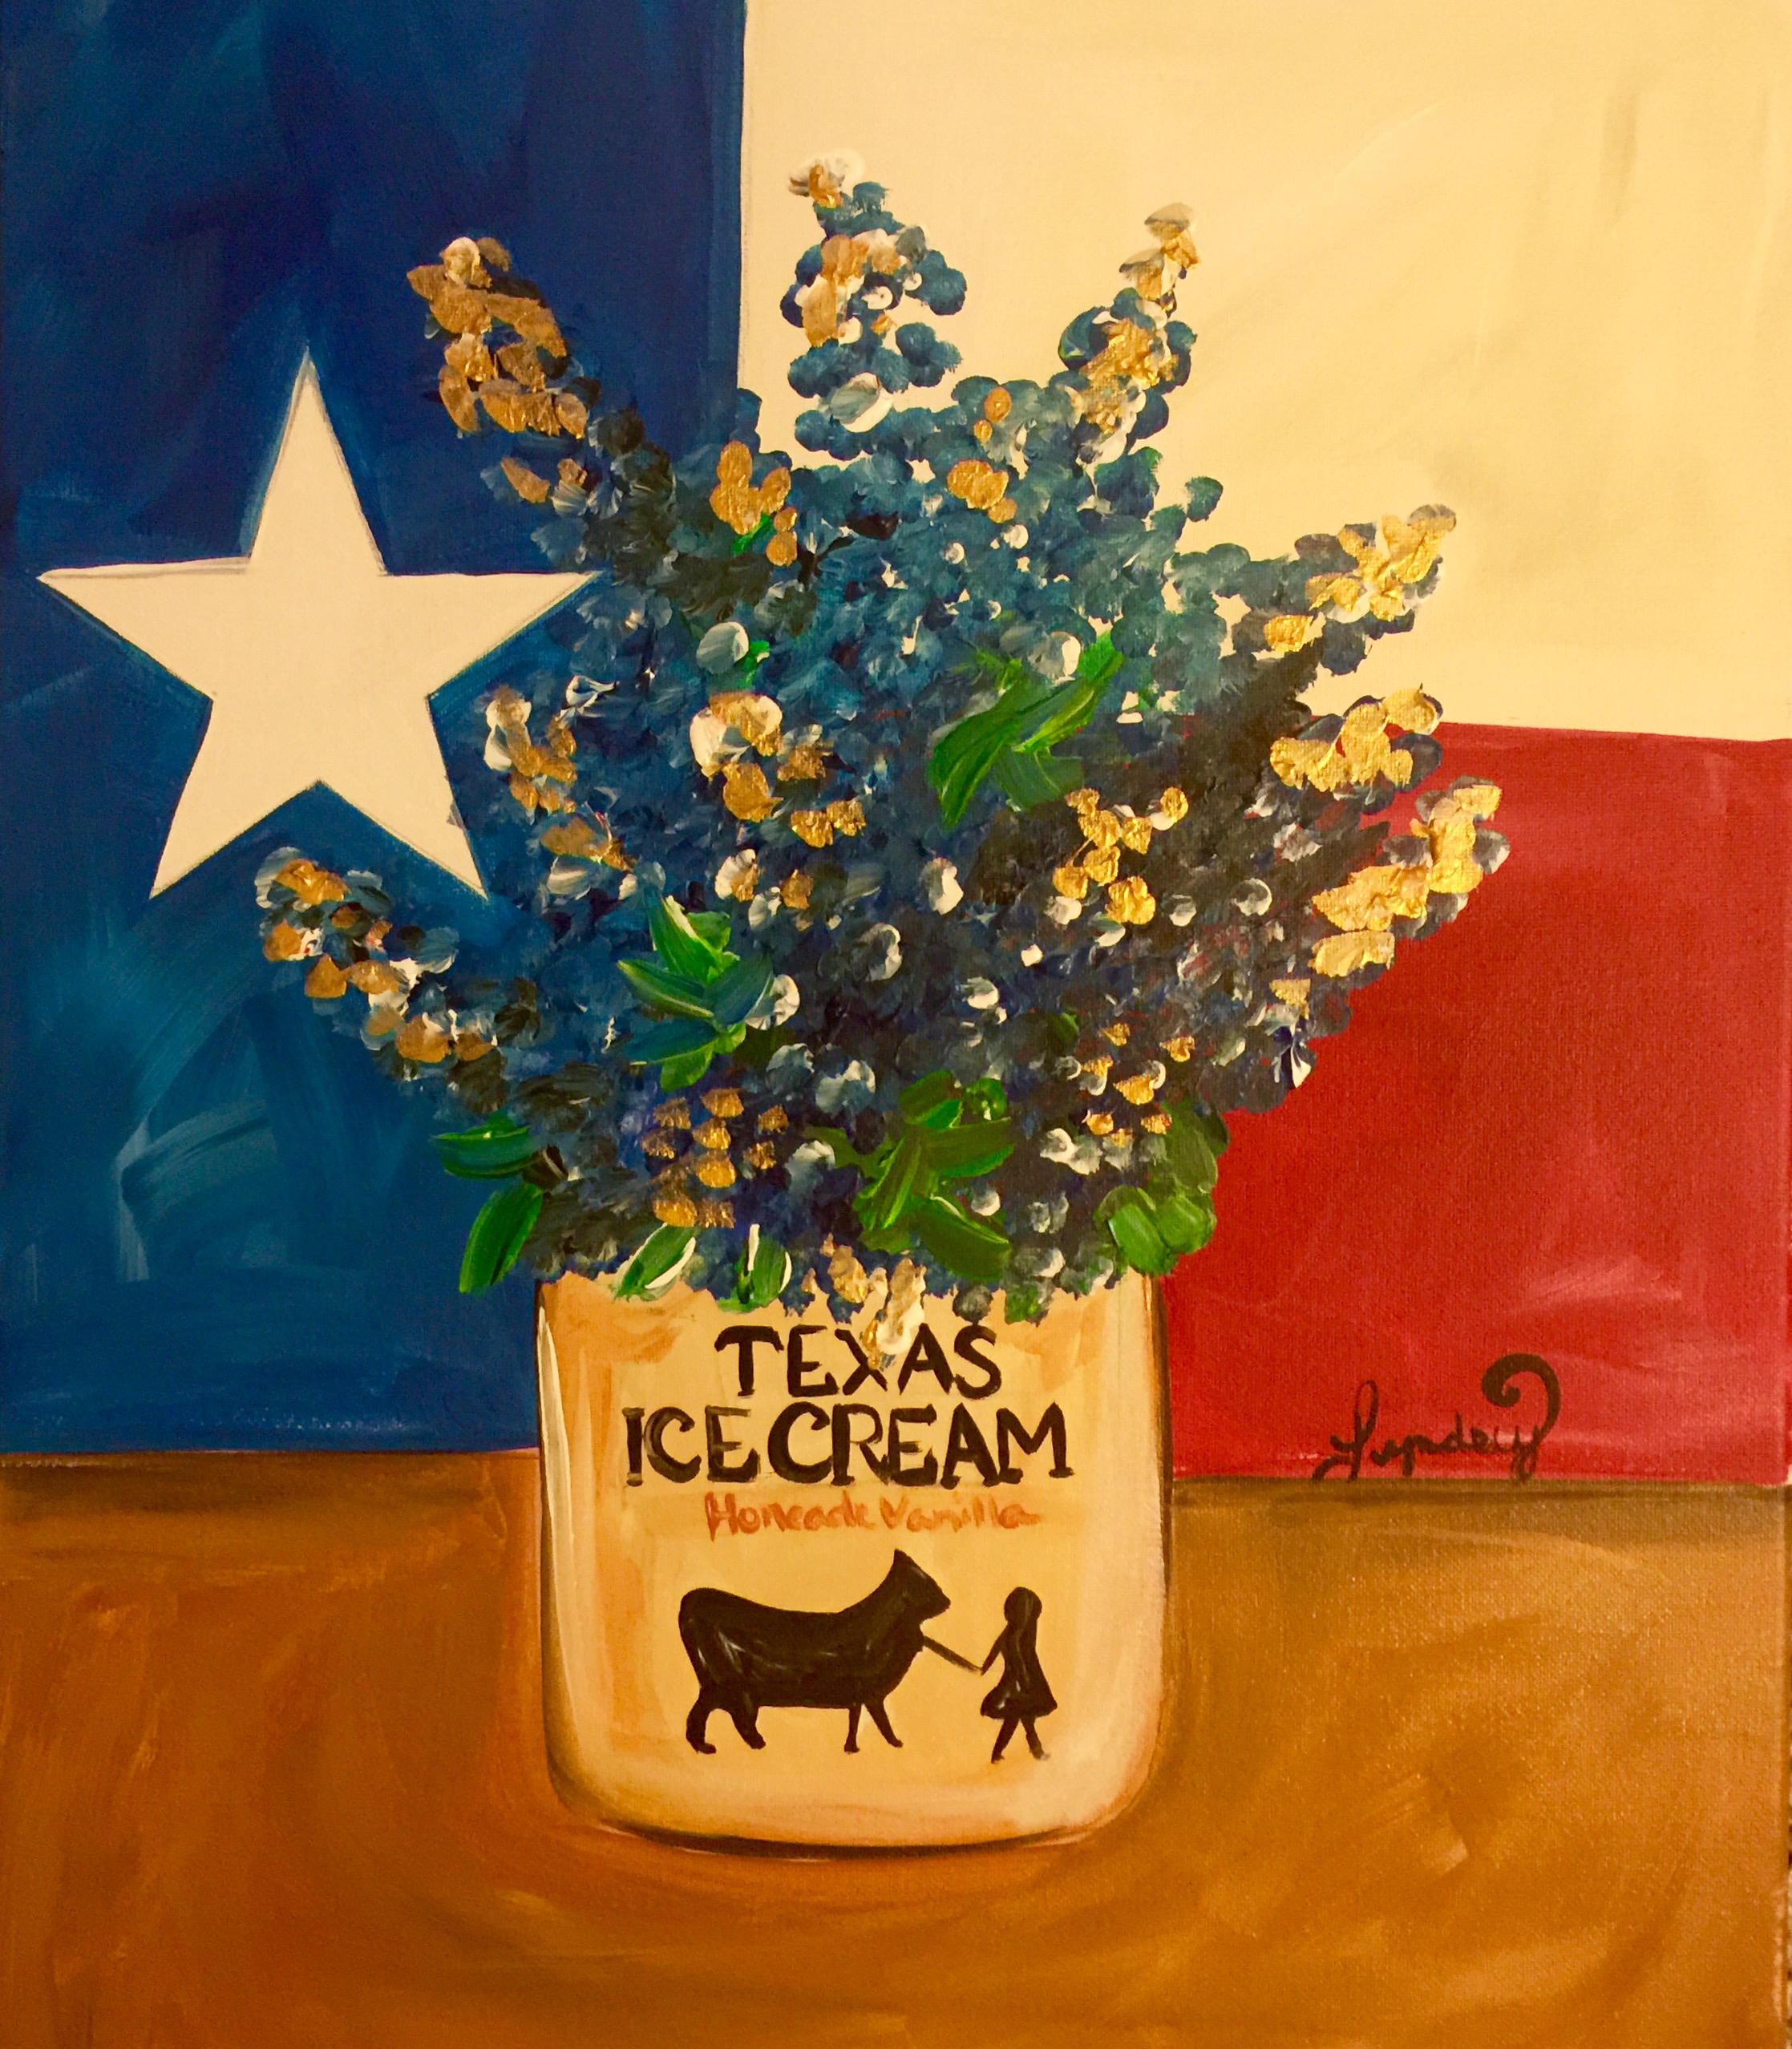 Texas Ice Cream